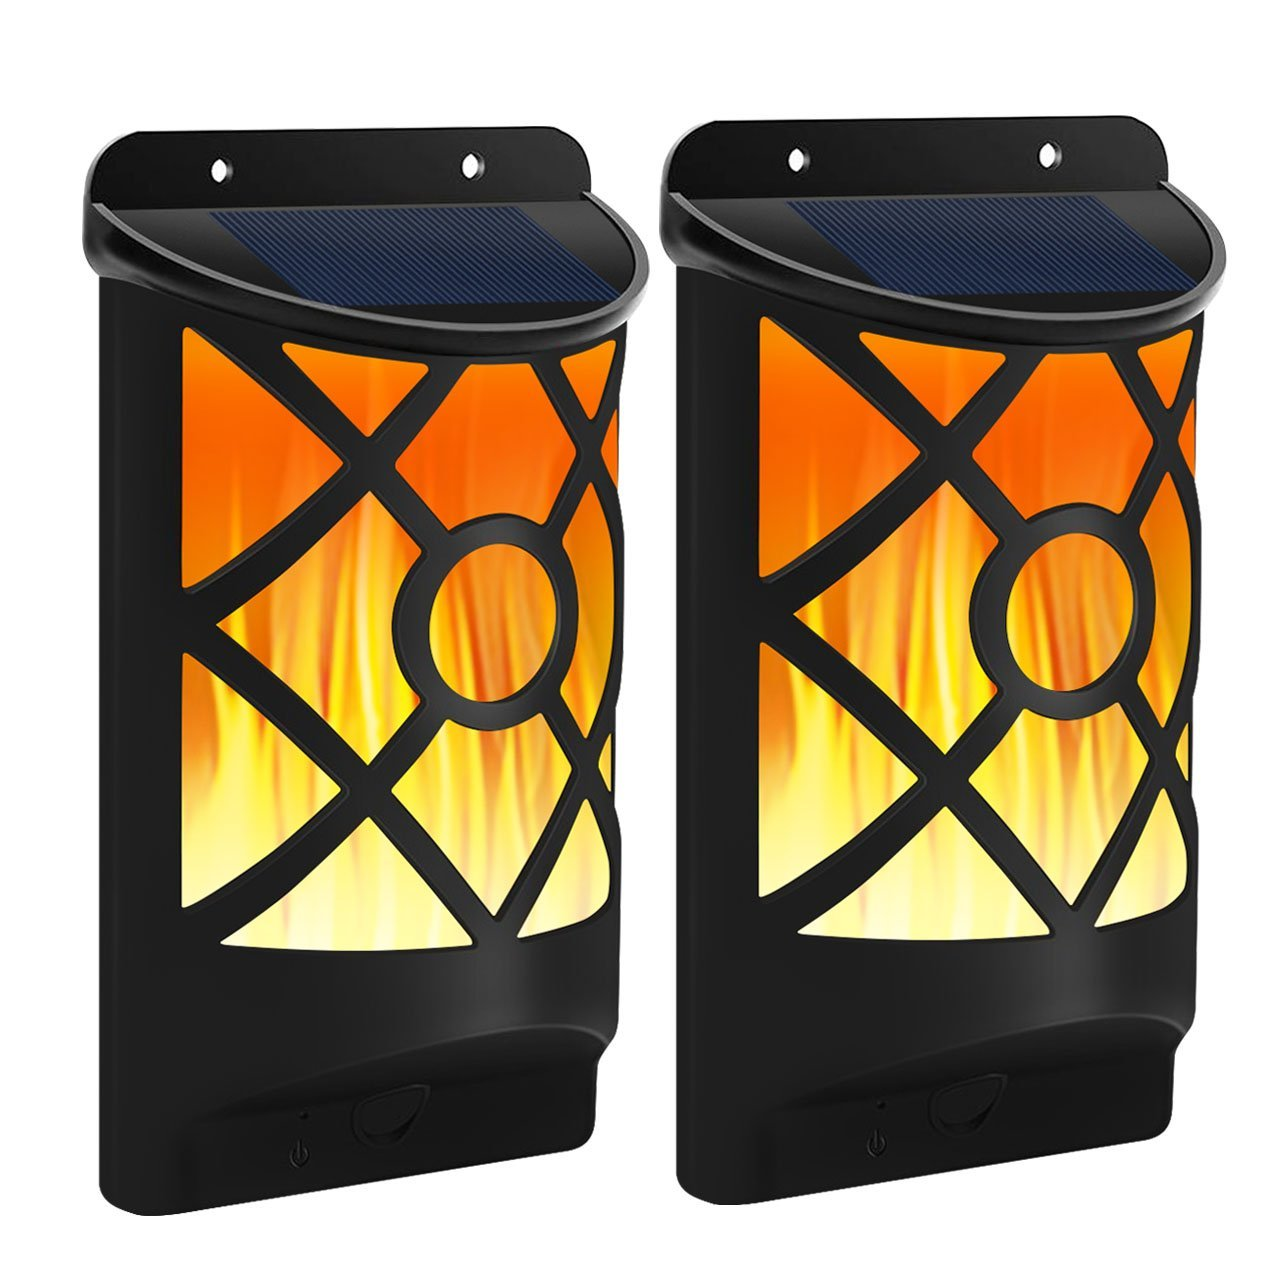 Led solar light outdoor luz solar led para exterior - Luz solar exterior ...